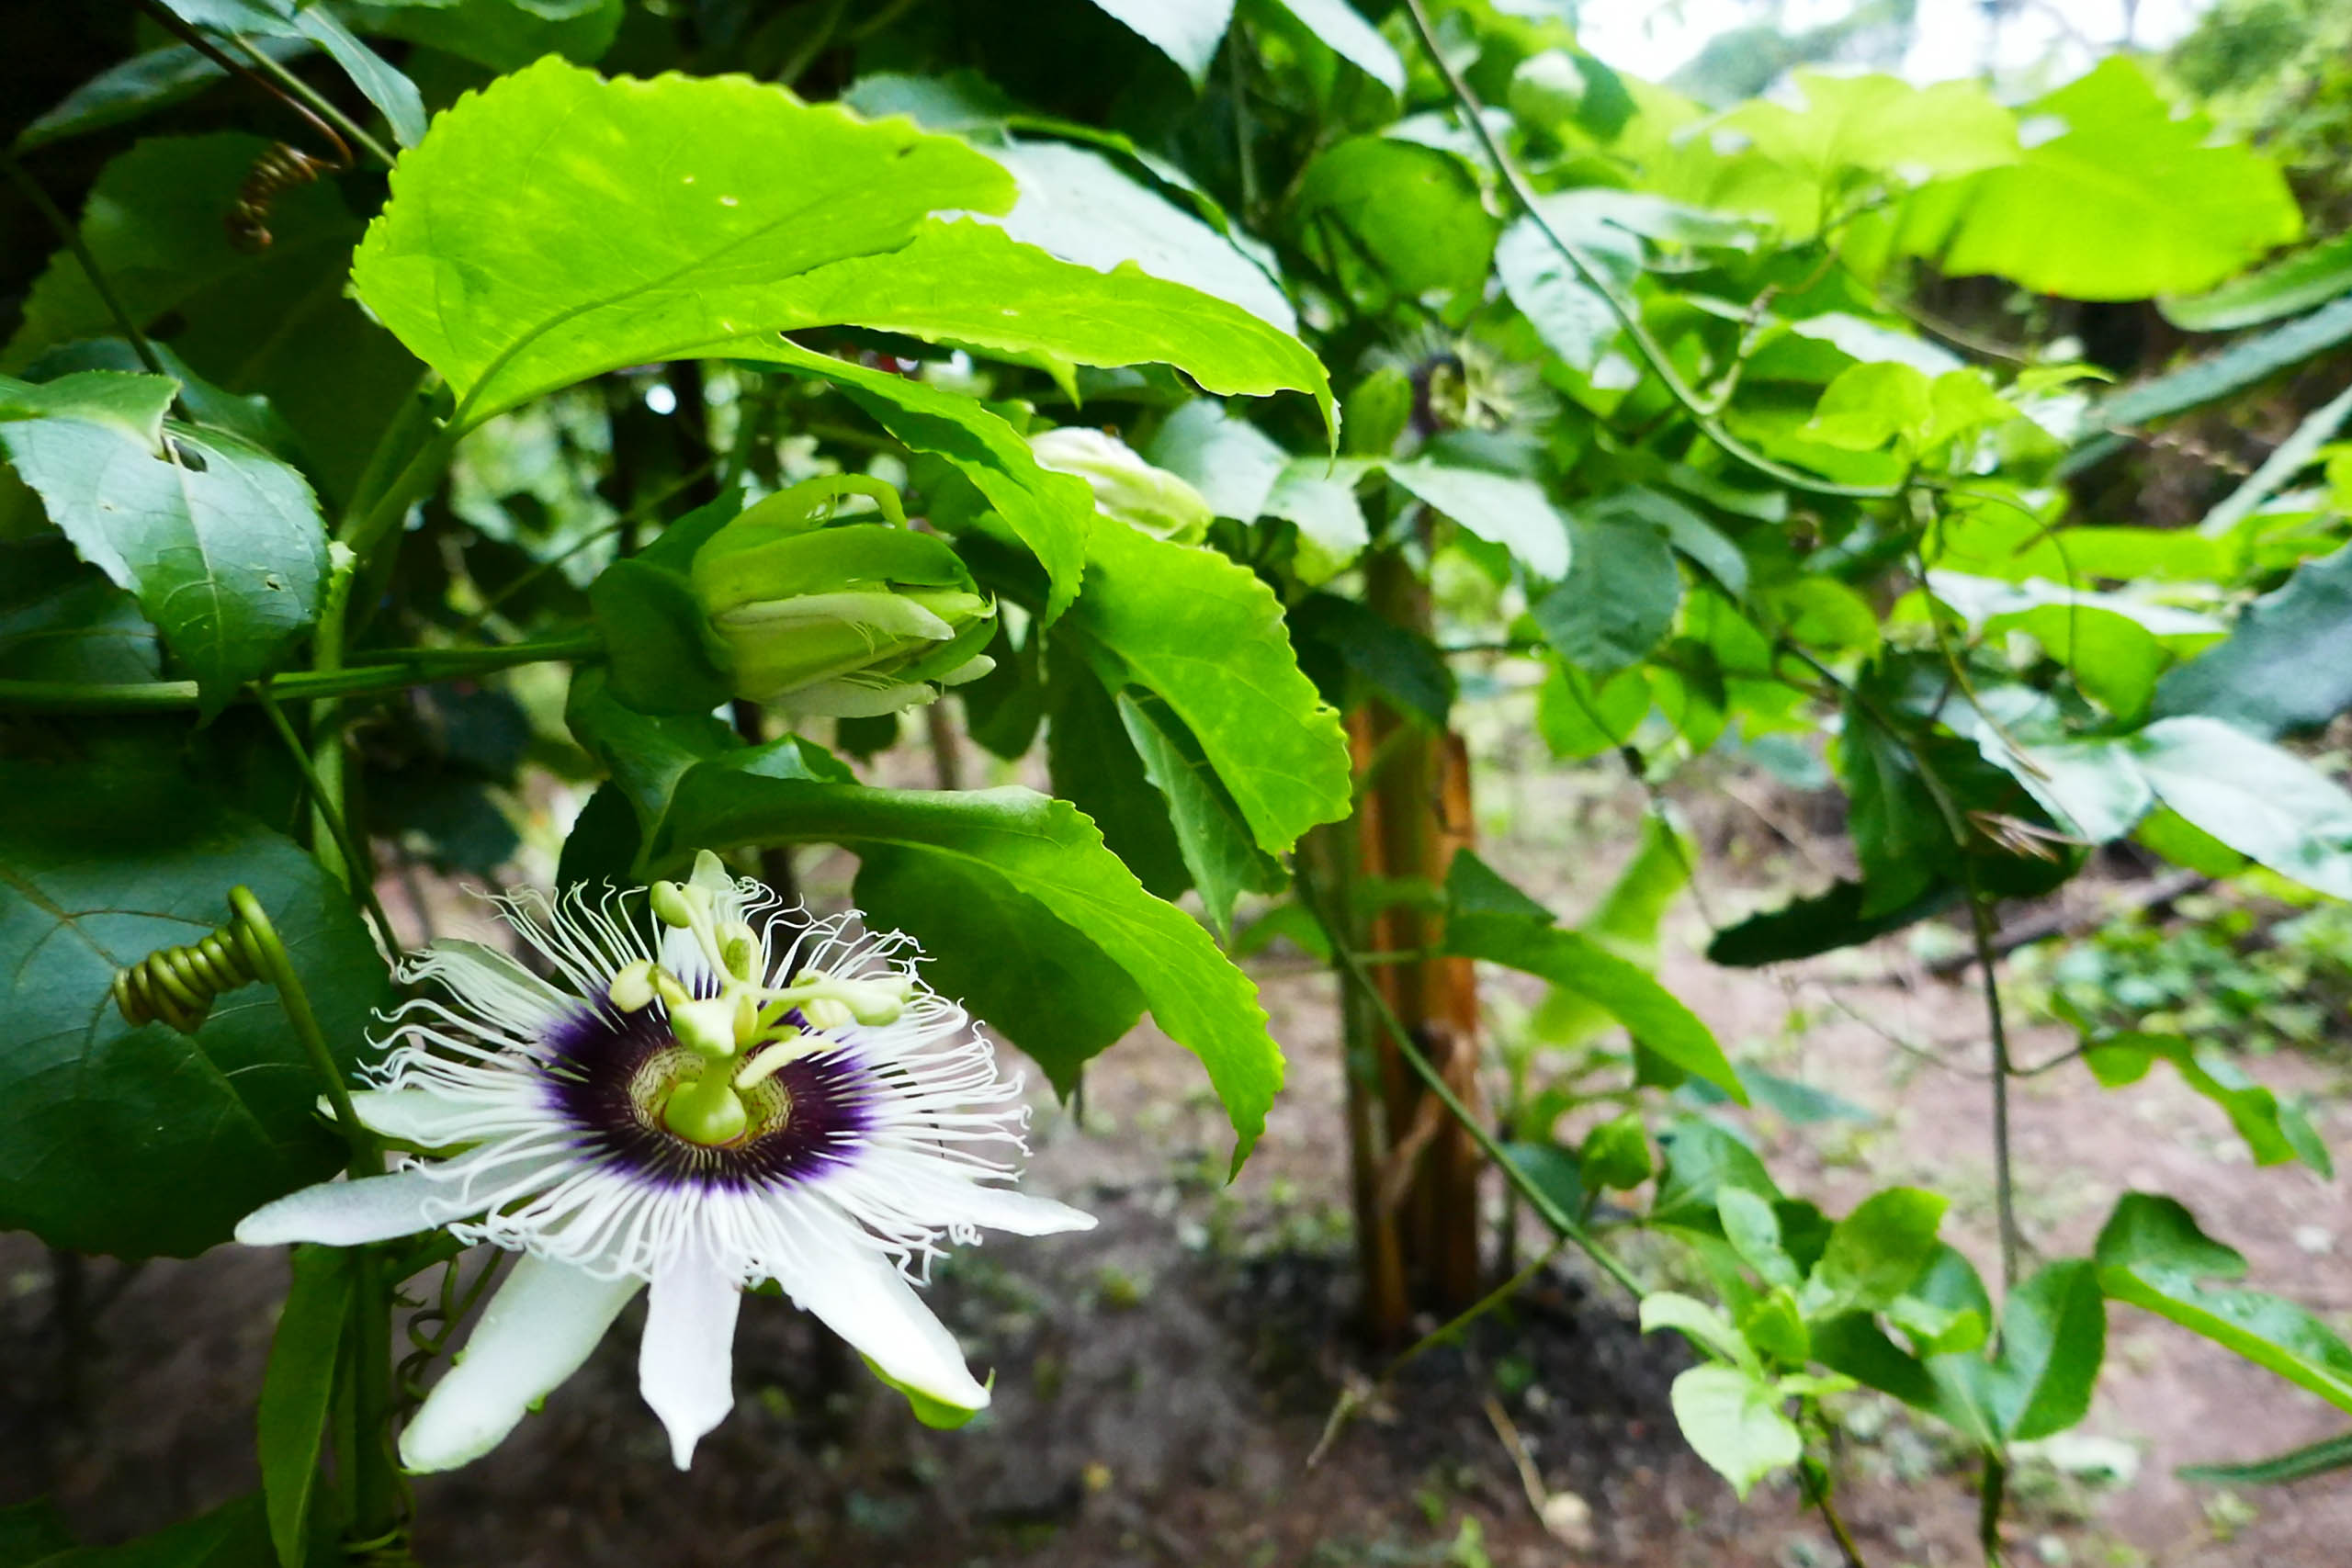 Casa Oro Group Open-Cafe-Oro-Farm-To-Table-Restaurant-Passion-Fruit-Flower-Regenerative-Organic-Farm-Fusion-Food-1 About